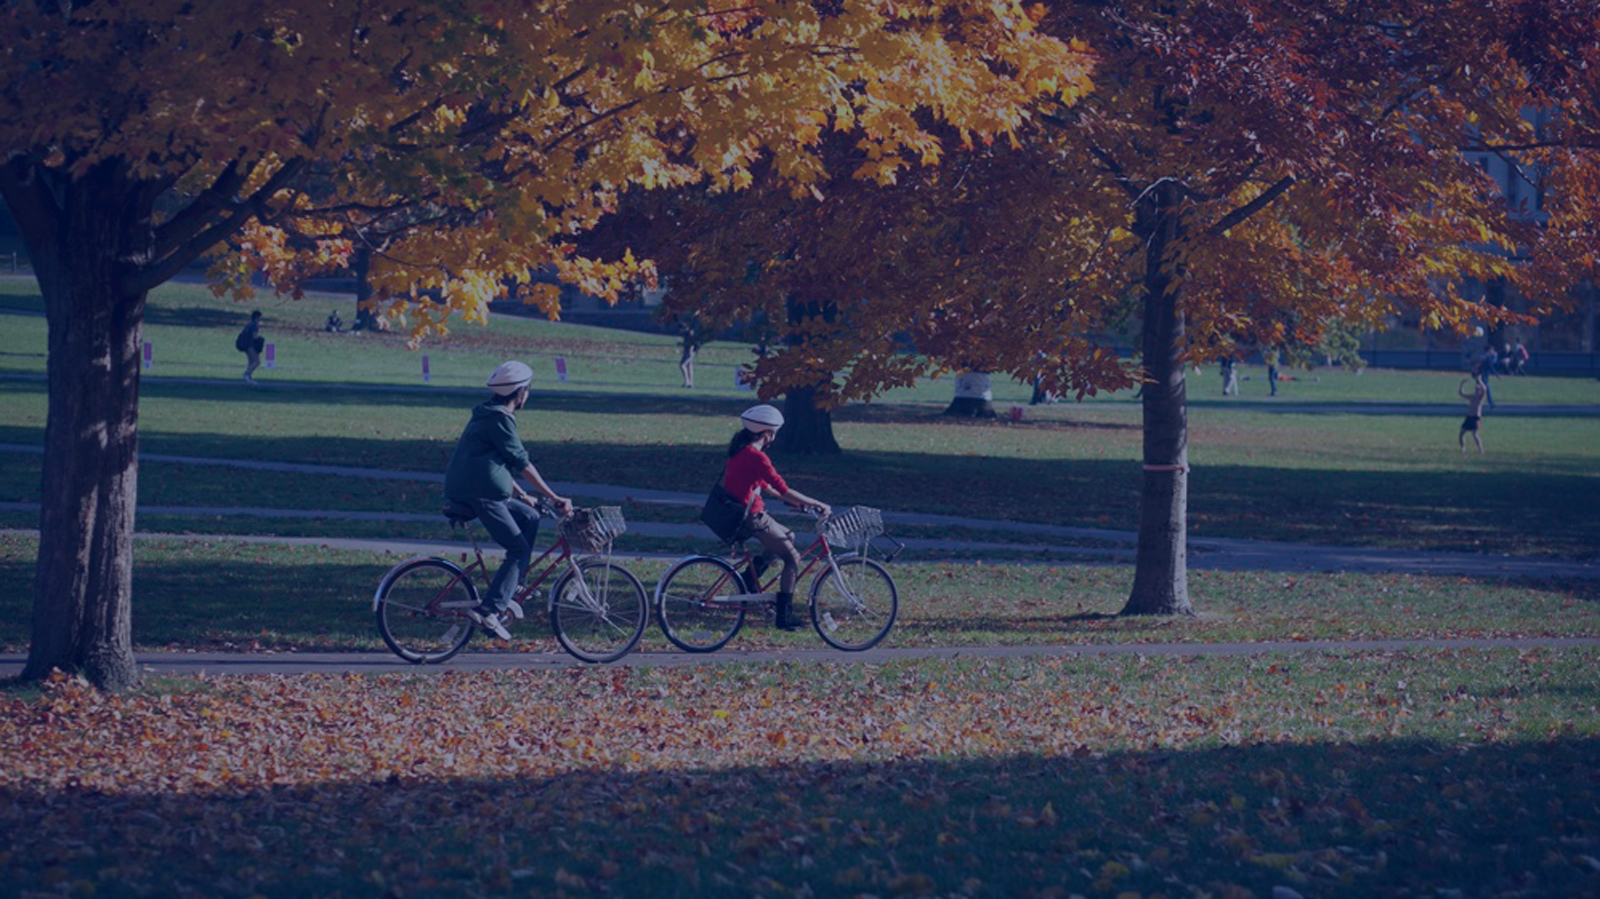 "<h4>Sustainable transportation</h4> <h5>Expanding existing transit services and developing new transportation options, like accessible biking, are key to reduce campus dependency on fossil fuels. <a href=""energy-101/sustainable-transportation""><u>Learn more.</u></a></h5> <em>Cornell Chronicle</em>"